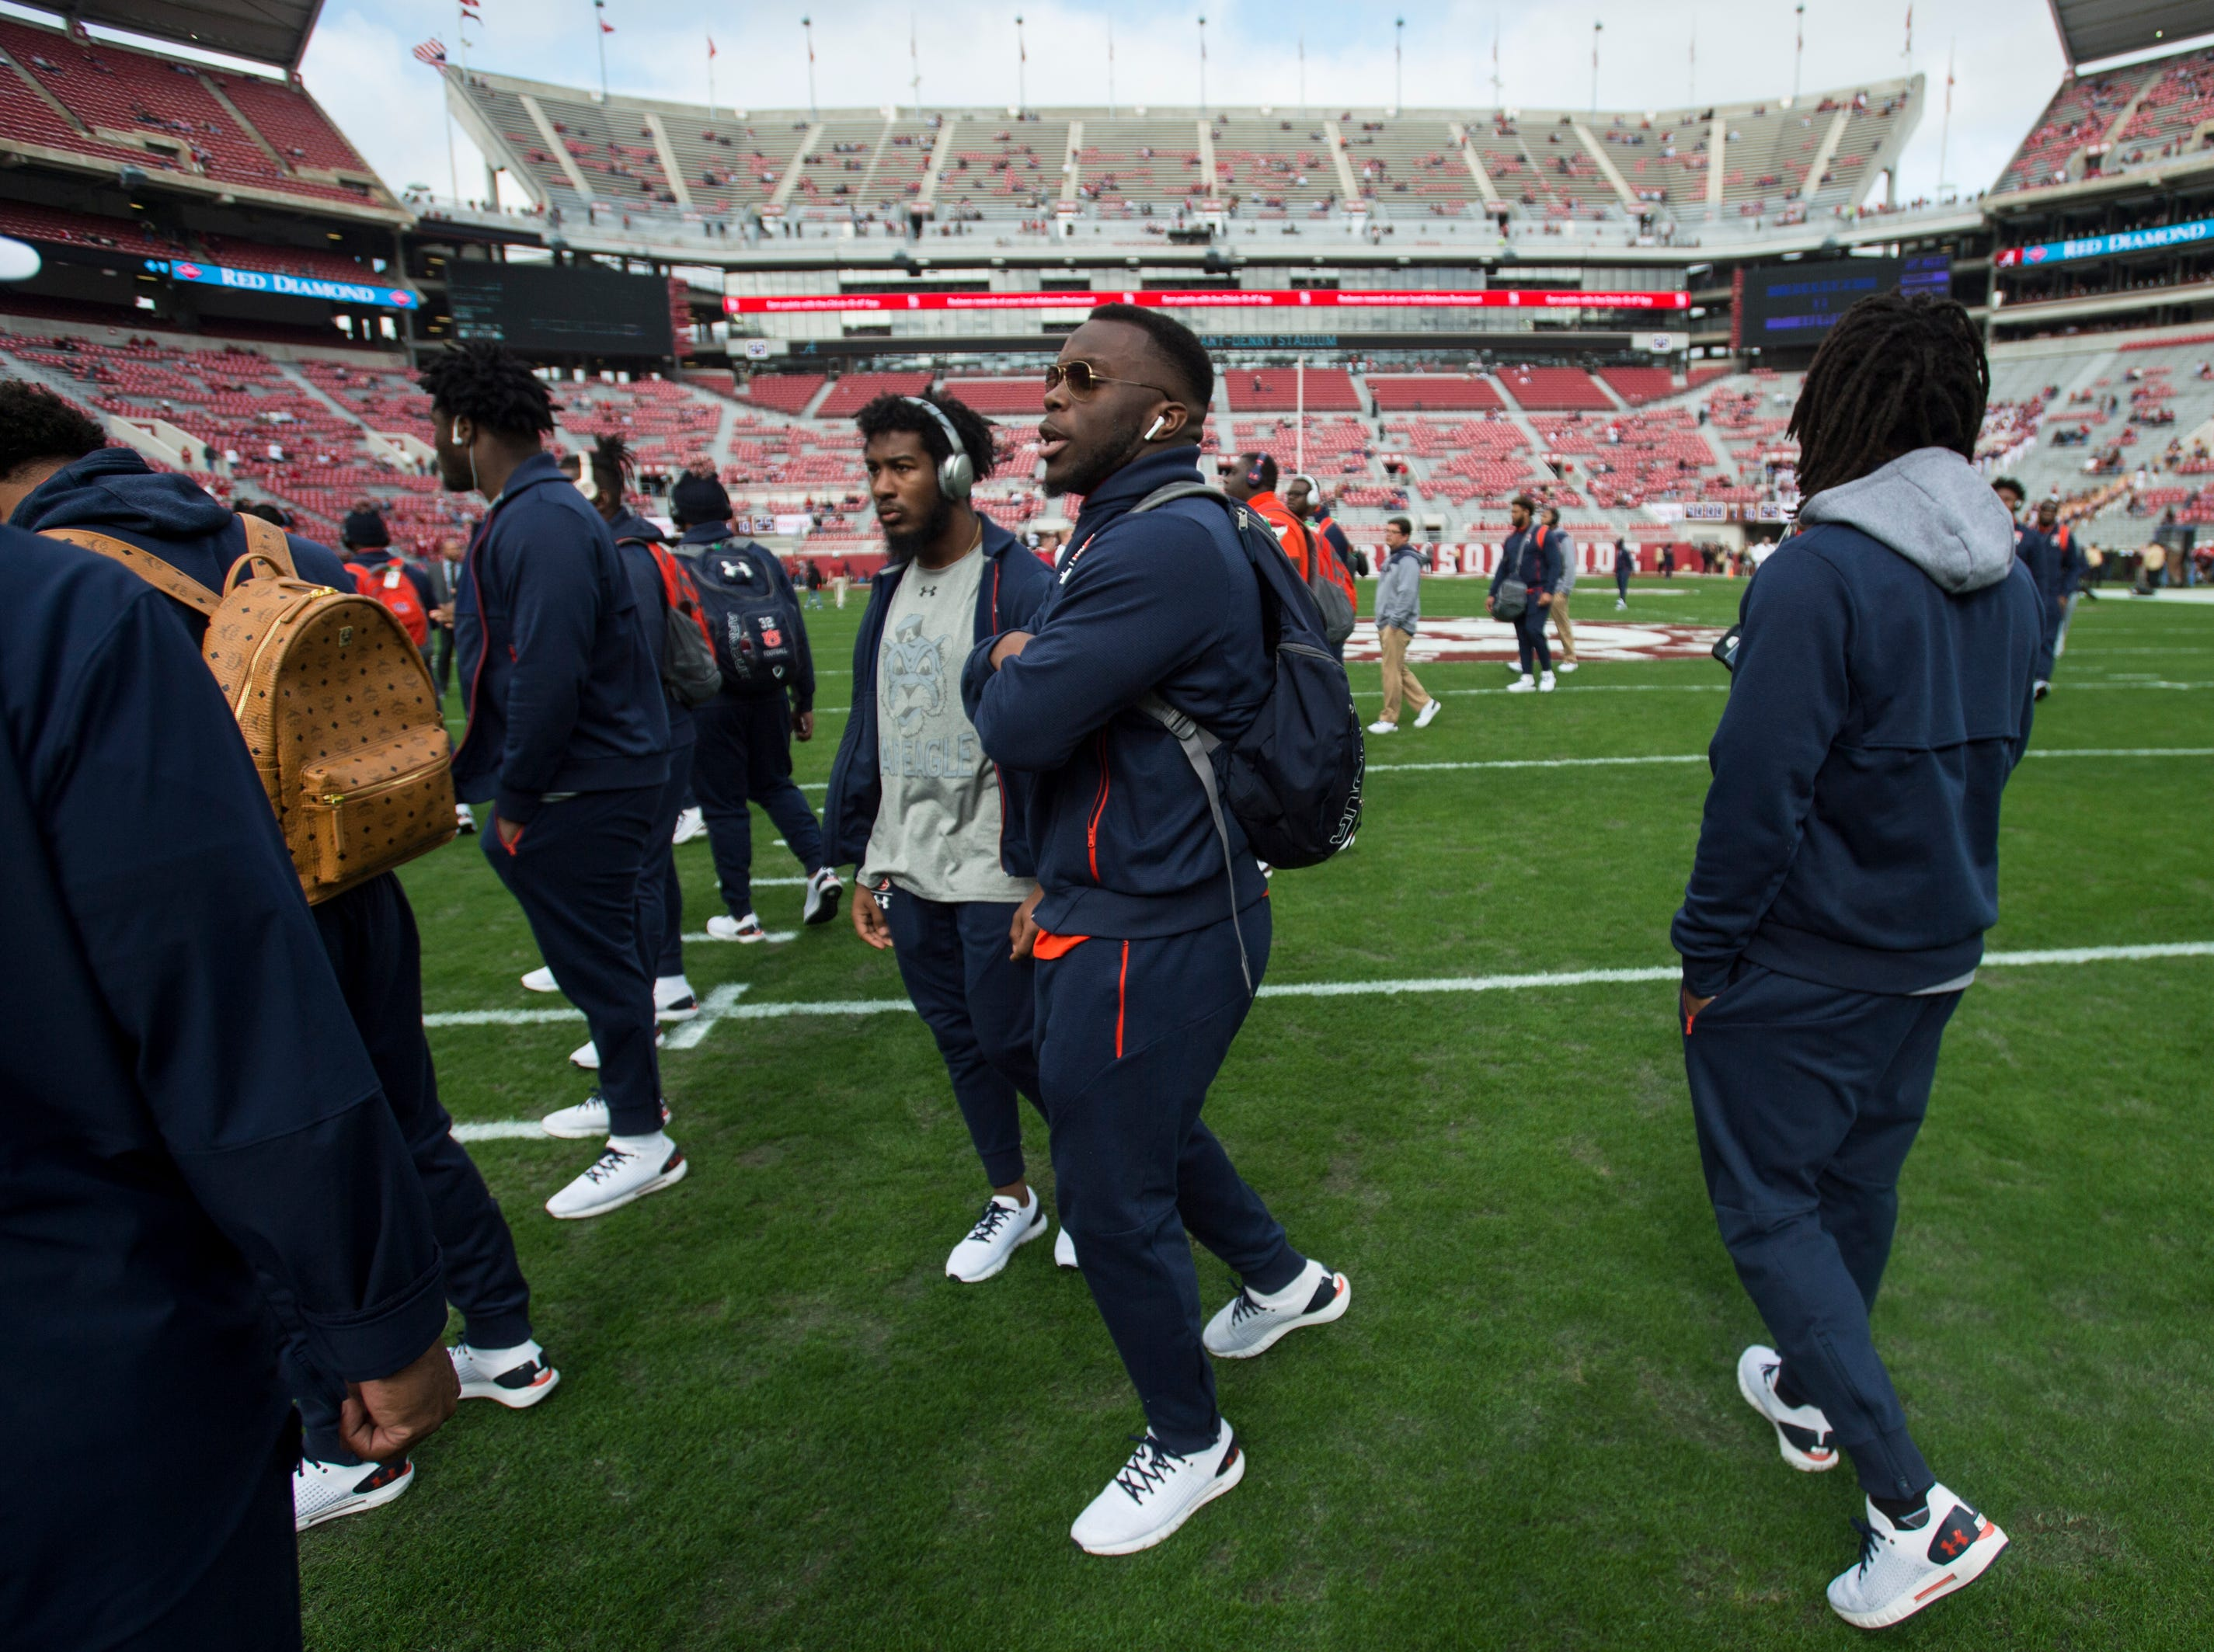 Auburn players get pumped up as they huddle on the field at Bryant-Denny Stadium in Tuscaloosa, Ala., on Saturday, Nov. 24, 2018.